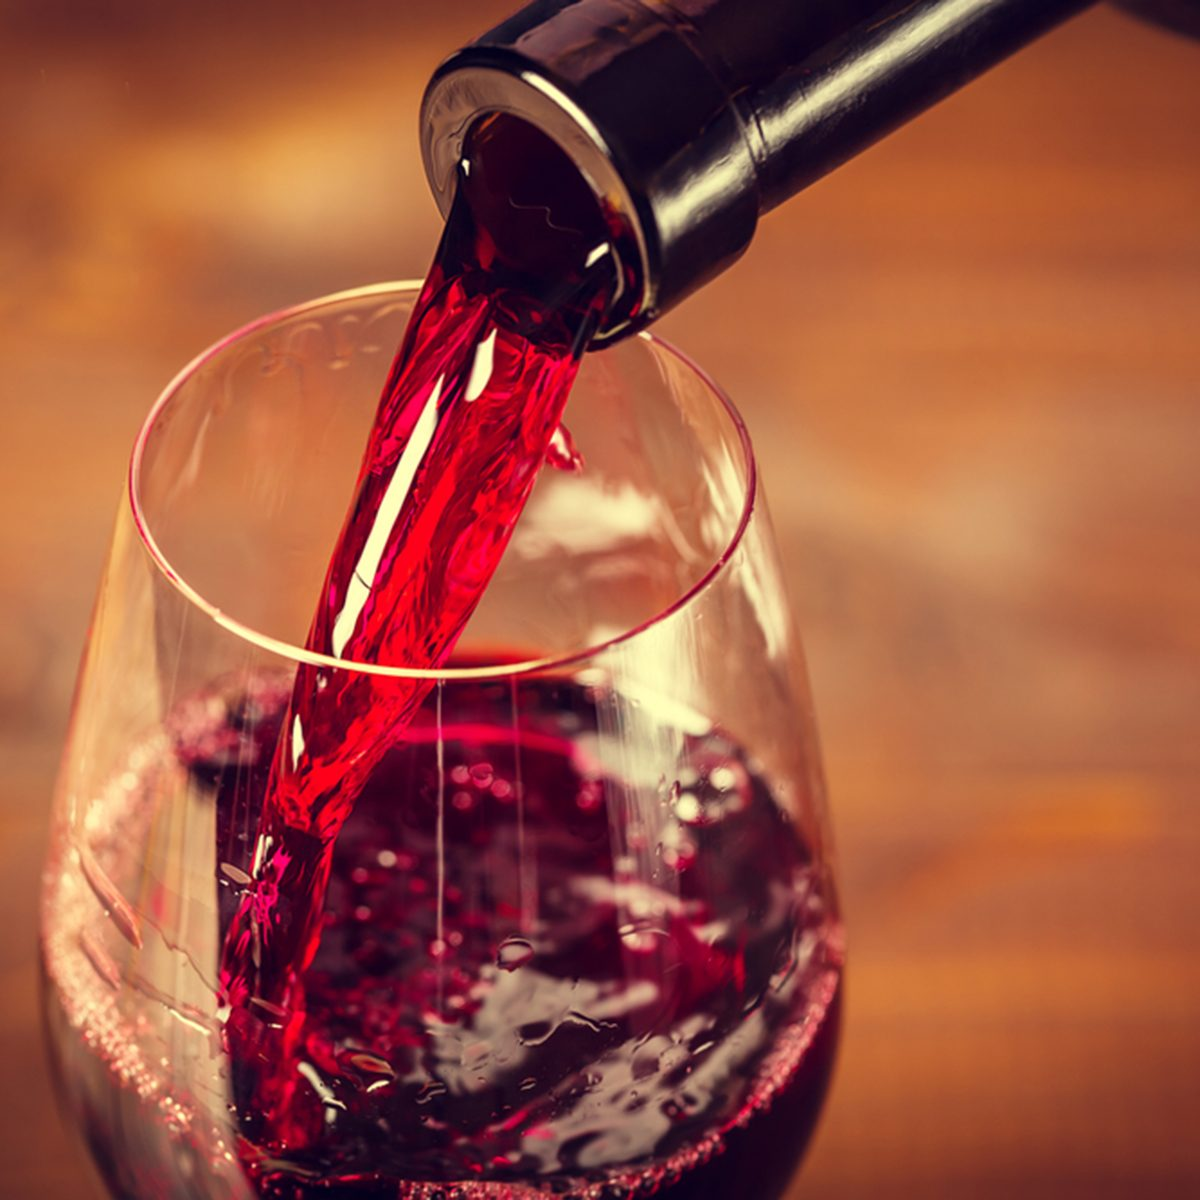 Pouring red wine into the glass against wooden background; Shutterstock ID 374546602; Job (TFH, TOH, RD, BNB, CWM, CM): TOH